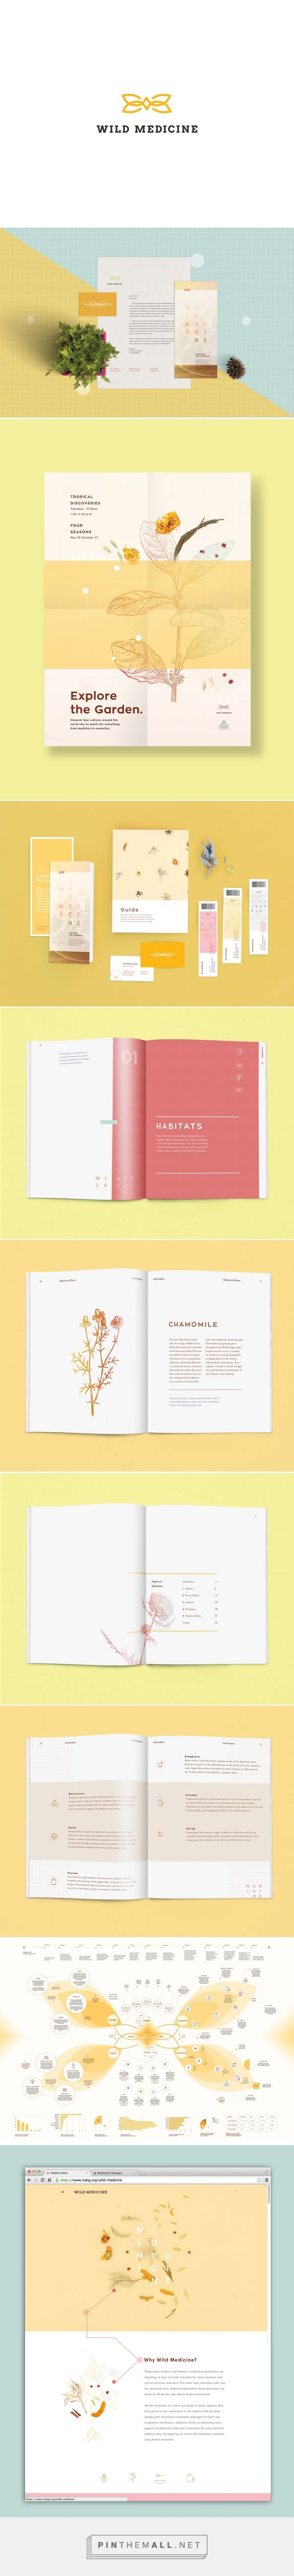 Wild Medicine Branding by Grace Kuk on Behance | Fivestar Branding – Design and Branding Agency & Inspiration Gallery | Fivestar Branding – Design and Branding Agency & Inspiration Gallery editorial web logo